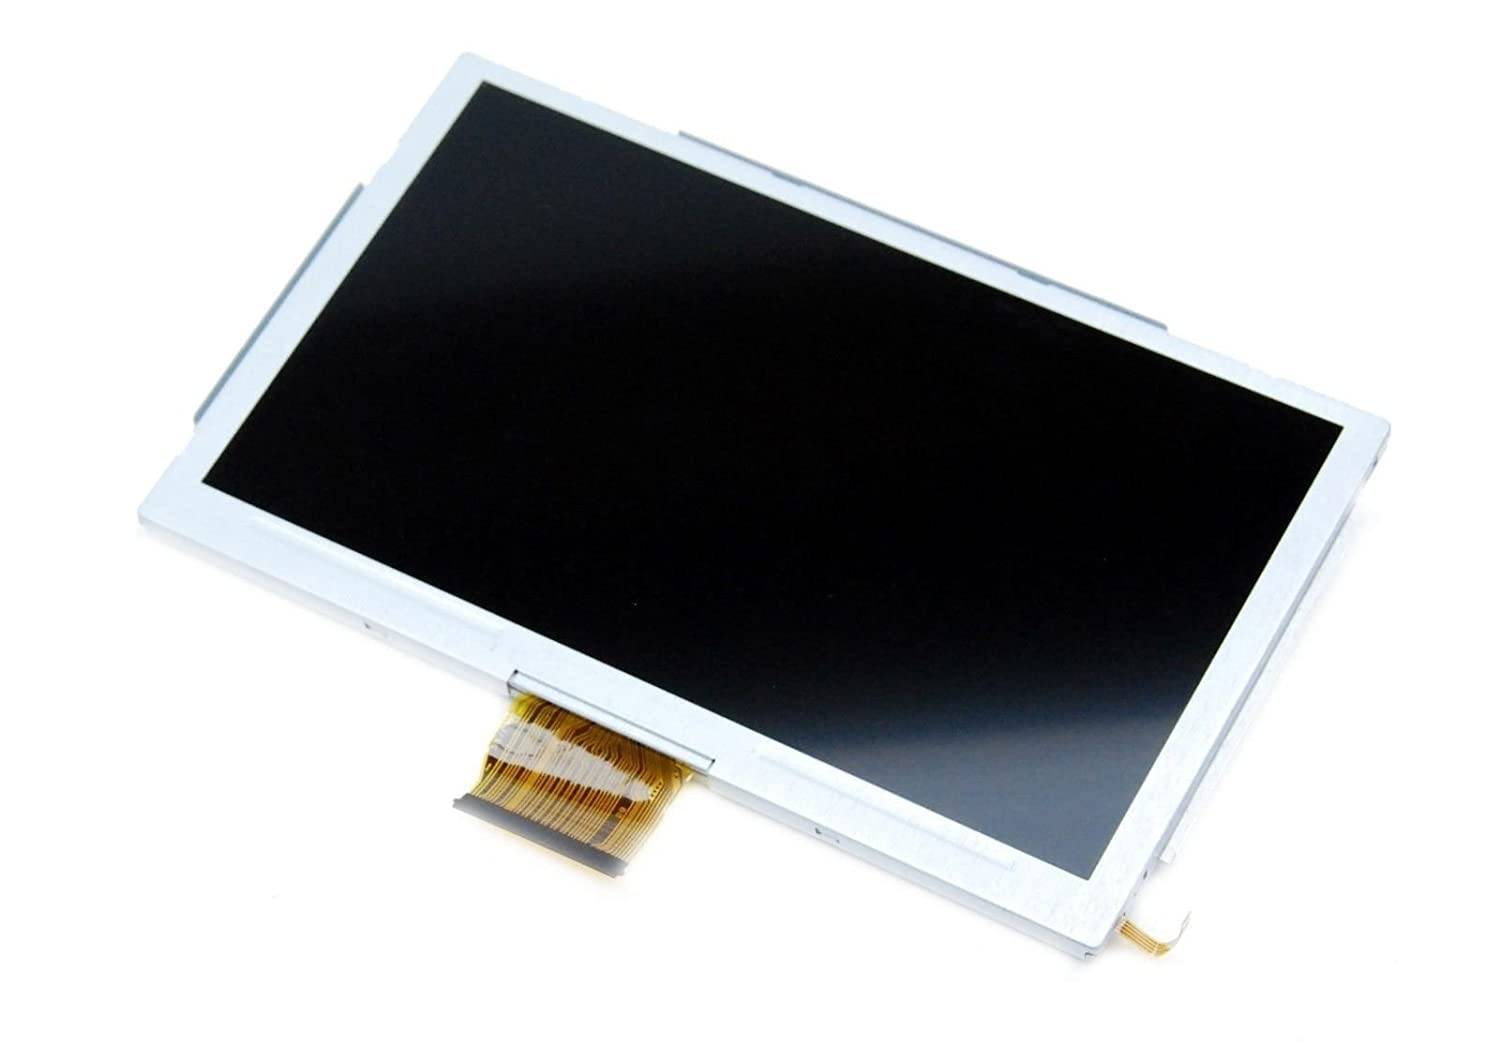 Official Replacement Lcd Screen Display Glass Assembly Wii U Motherboard Wiring Diagram For Nintendo By Honglei Computers Accessories